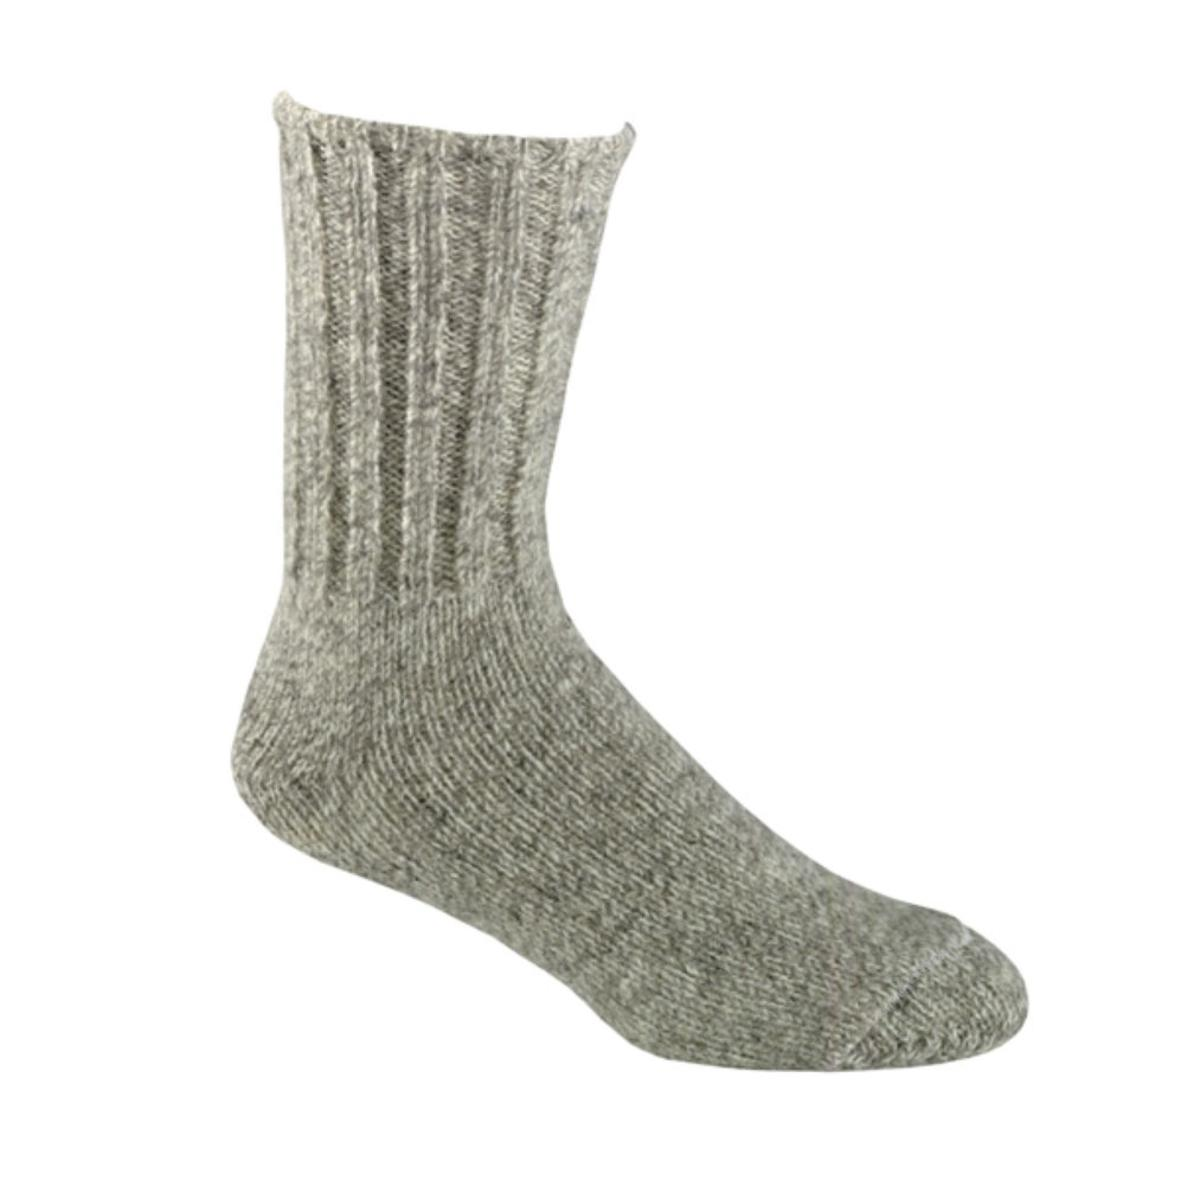 Fox River Norsk Heavyweight Rag Wool Socks, Warm and Rugged for Cold Winter Days by Wool Socks